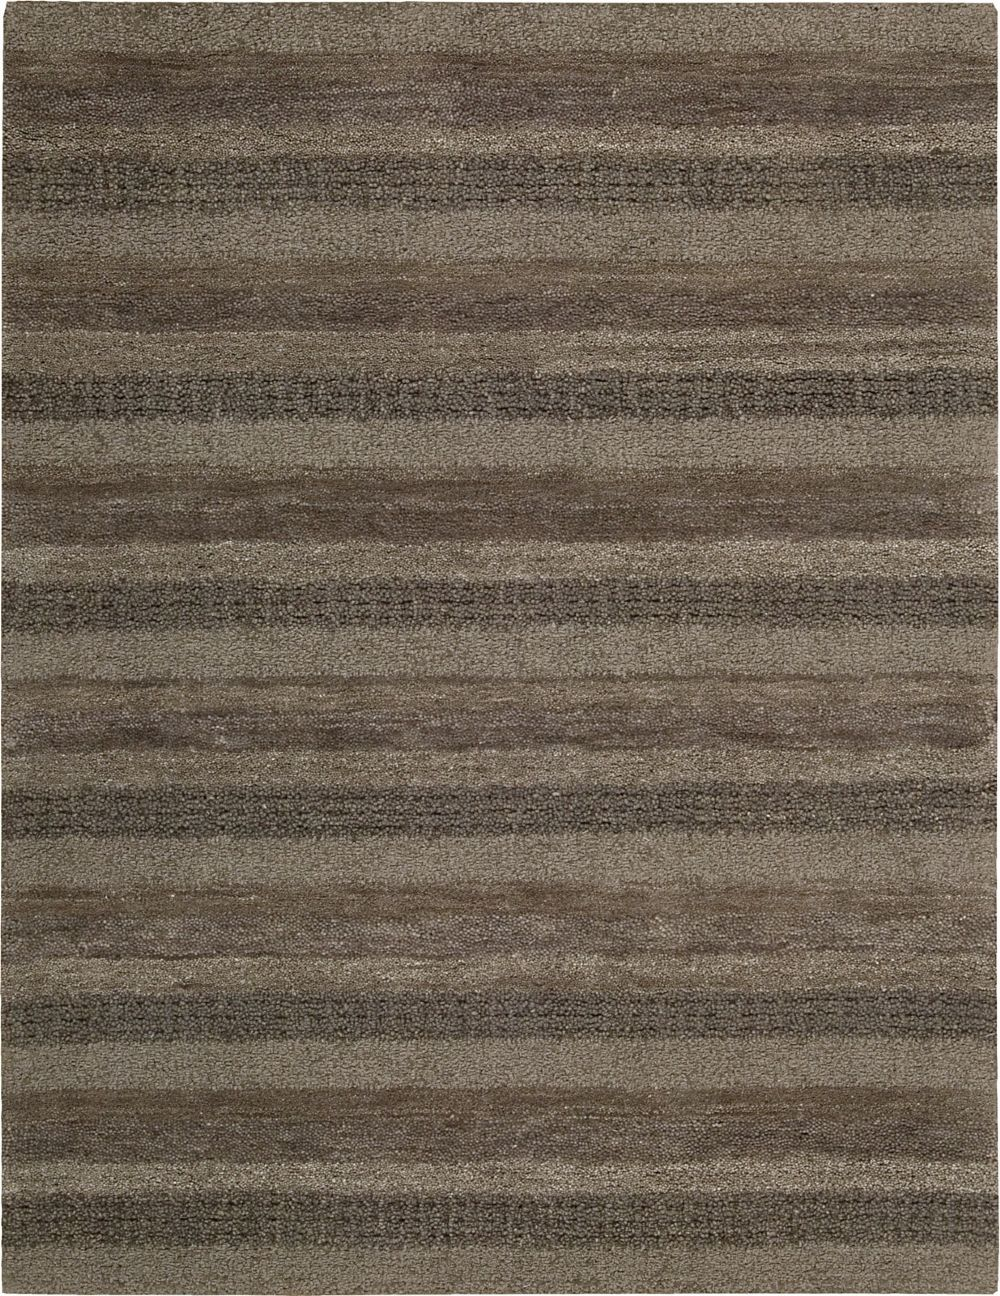 calvin klein ck24 - sequoia contemporary area rug collection